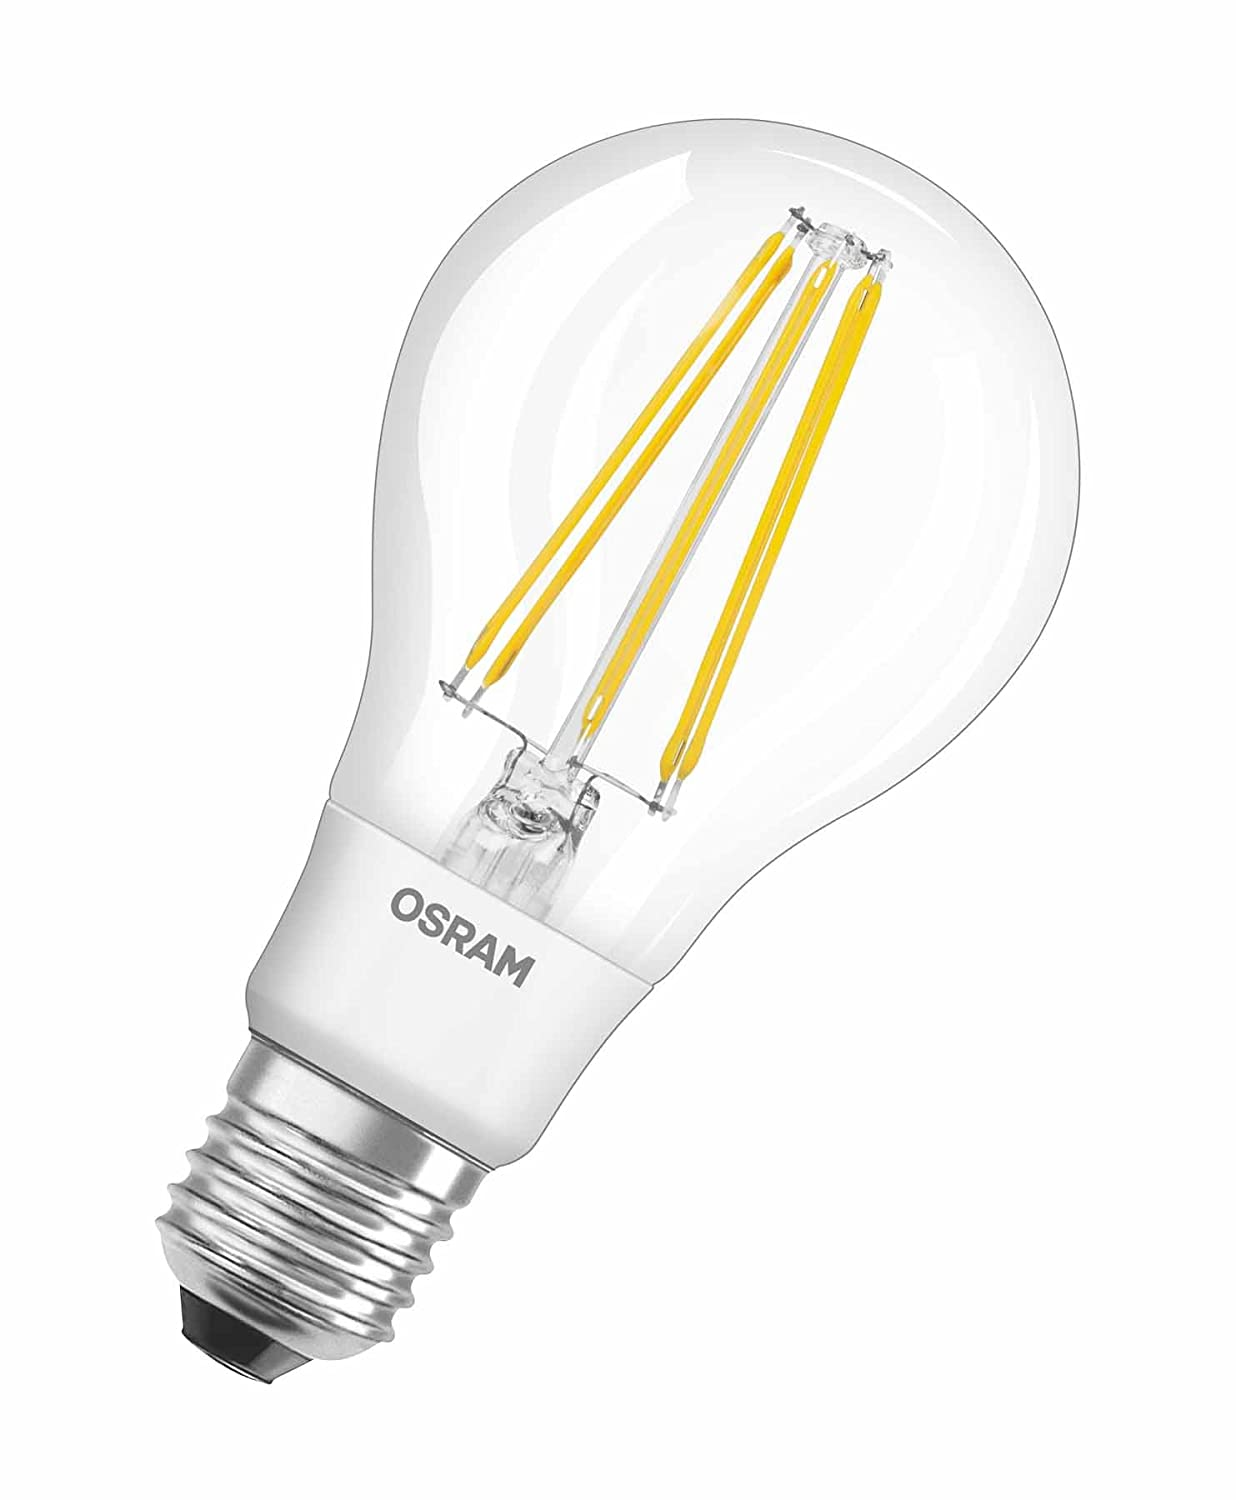 Osram led retrofit classic aled lamp classic bulb shape e27 osram led retrofit classic aled lamp classic bulb shape e27 220 to 240 v 2700 k clear warm white 12 w 95 w replacement pack of 1 amazon parisarafo Choice Image